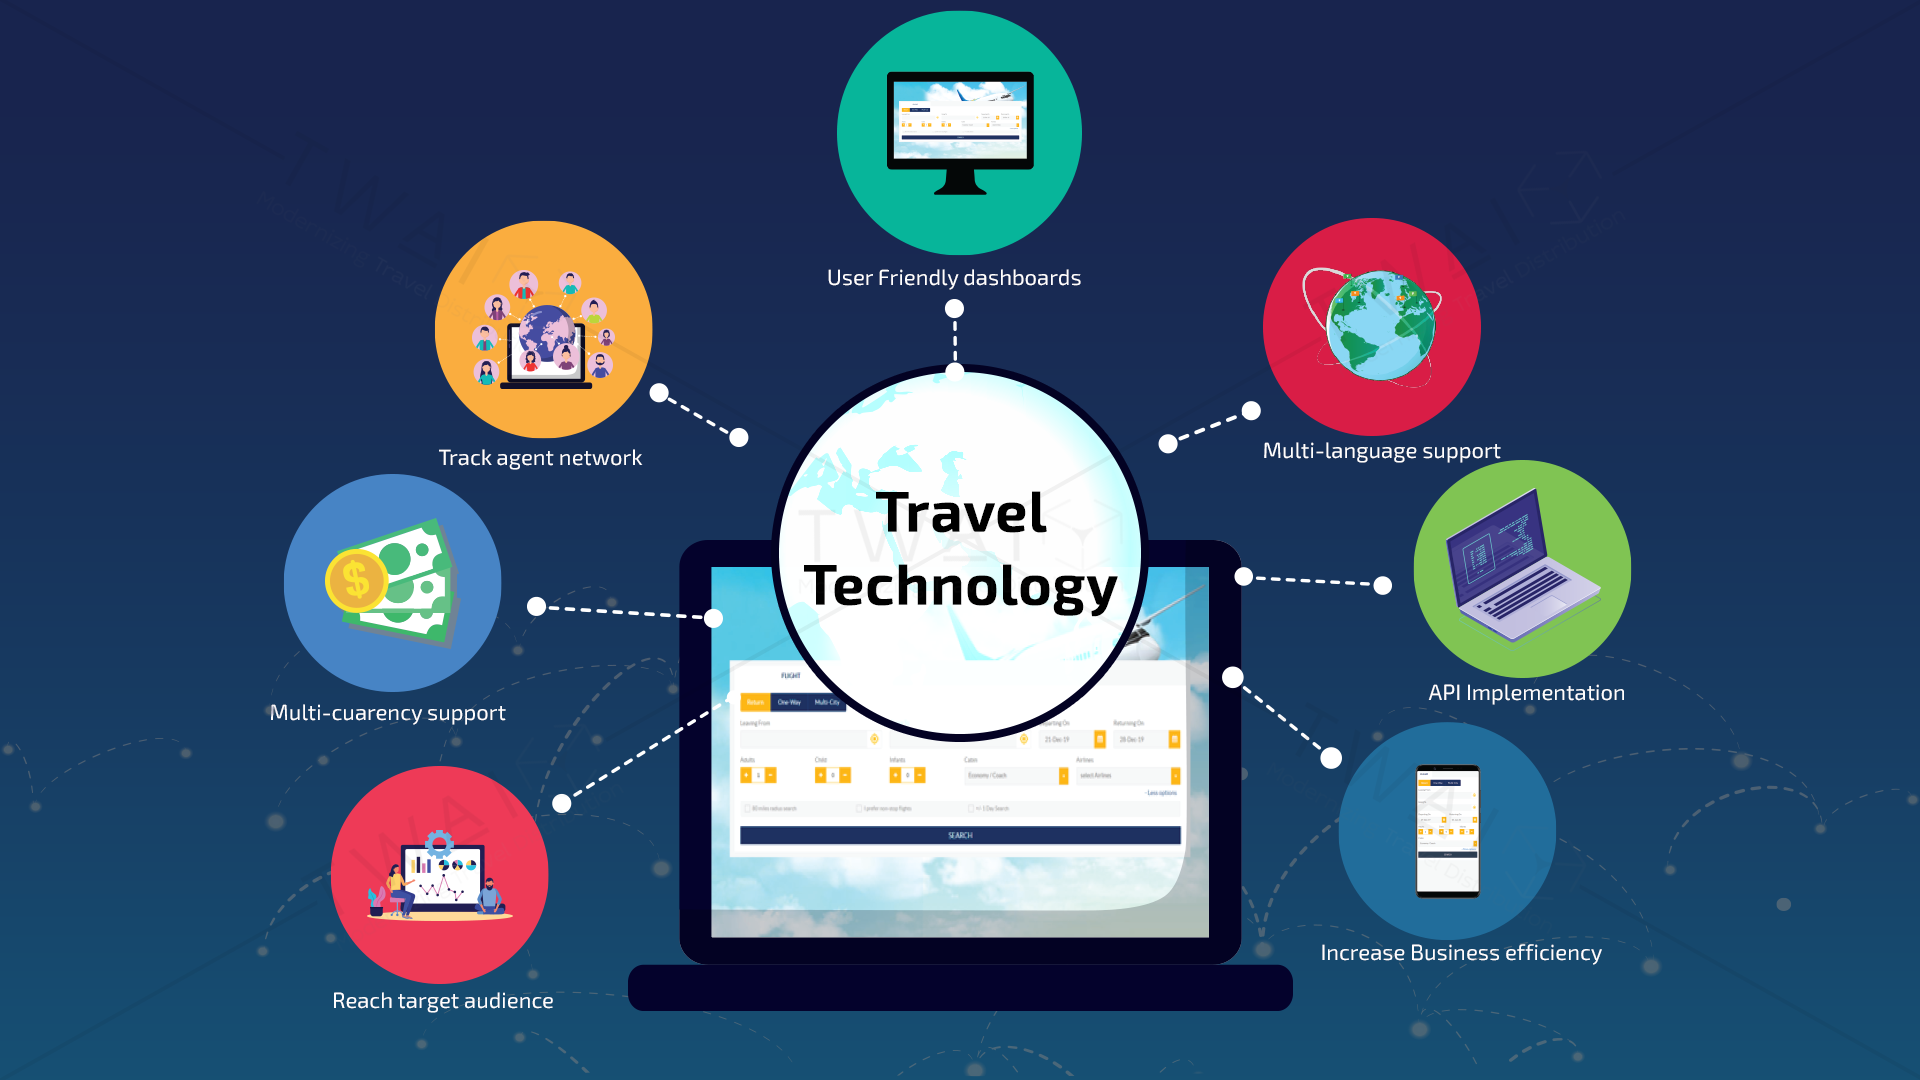 7 ways how travel technology simplifies your business